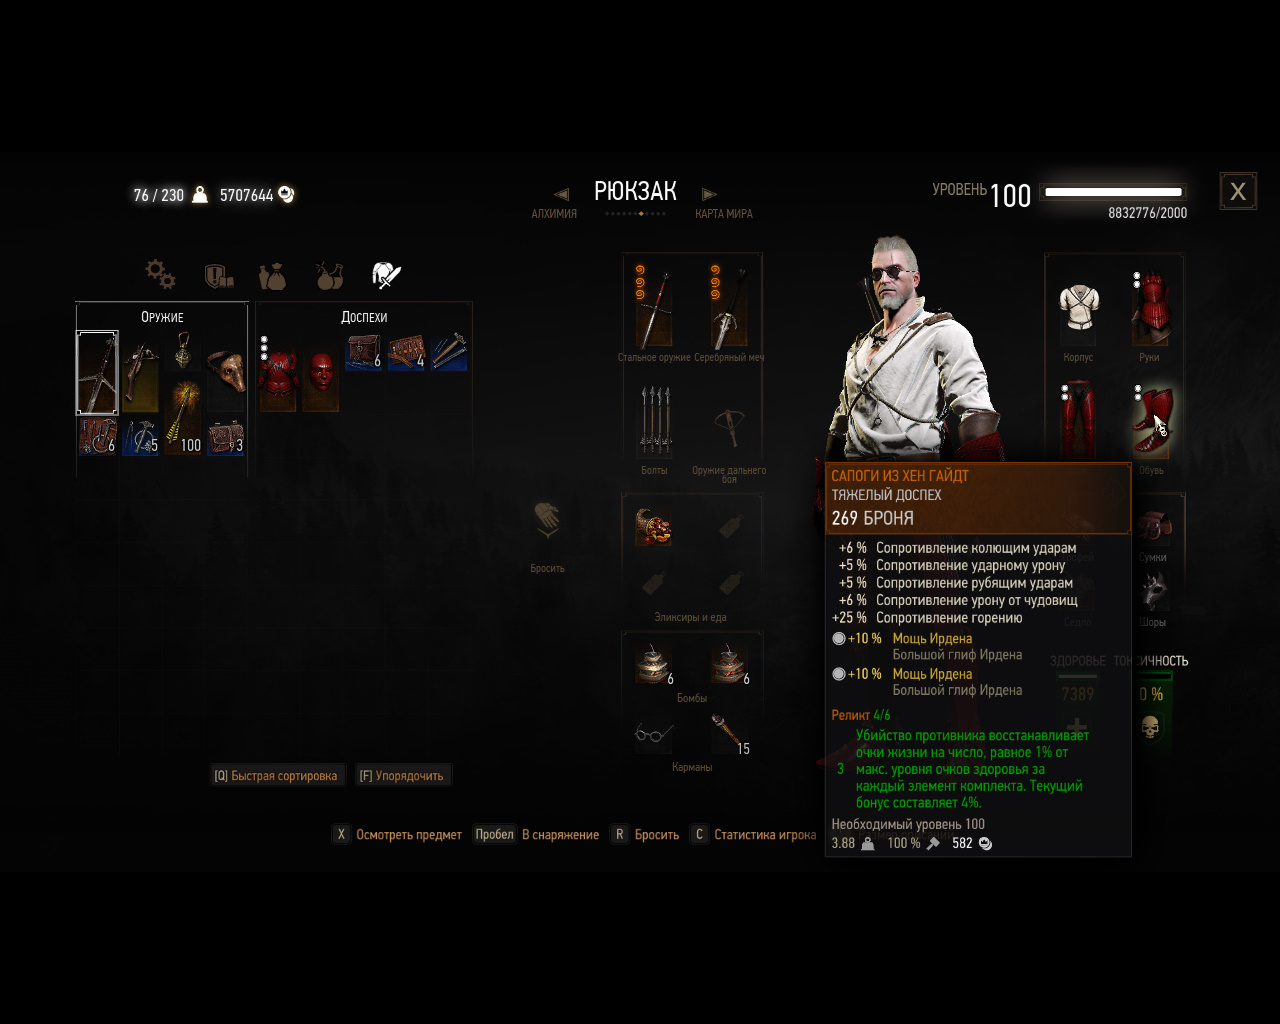 witcher3 2018-06-04 01-55-27-243.jpg - Witcher 3: Wild Hunt, the